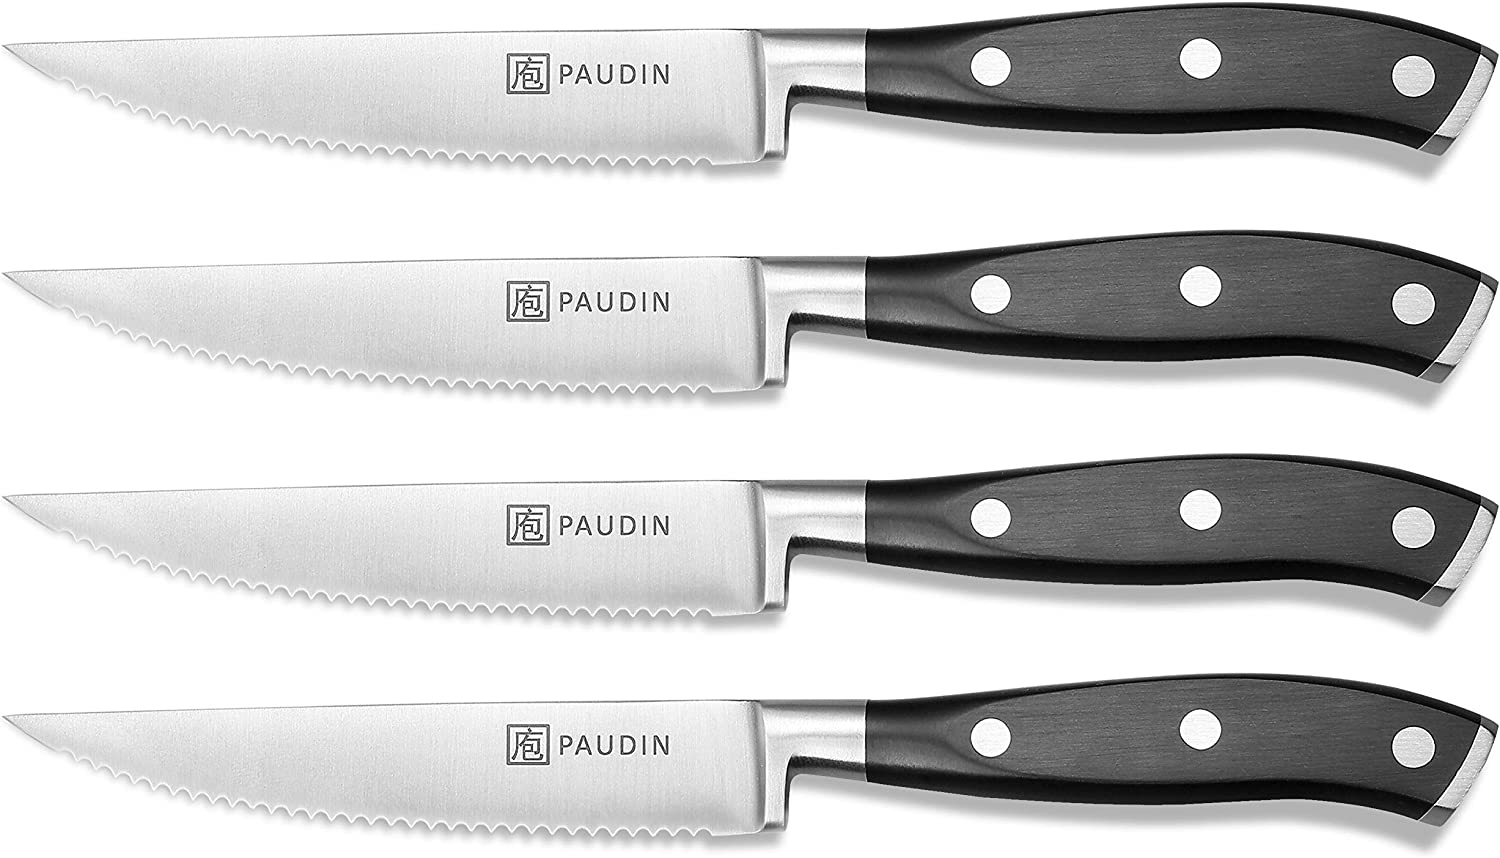 Steak Knives Set of 4 - PAUDIN Steak Knife Set - Serrated Steak Knives Dishwasher Safe Steak Knives - 4-Piece Steak Knives Set - Premium Stainless Steak Knives Serrated - Dinner Knives